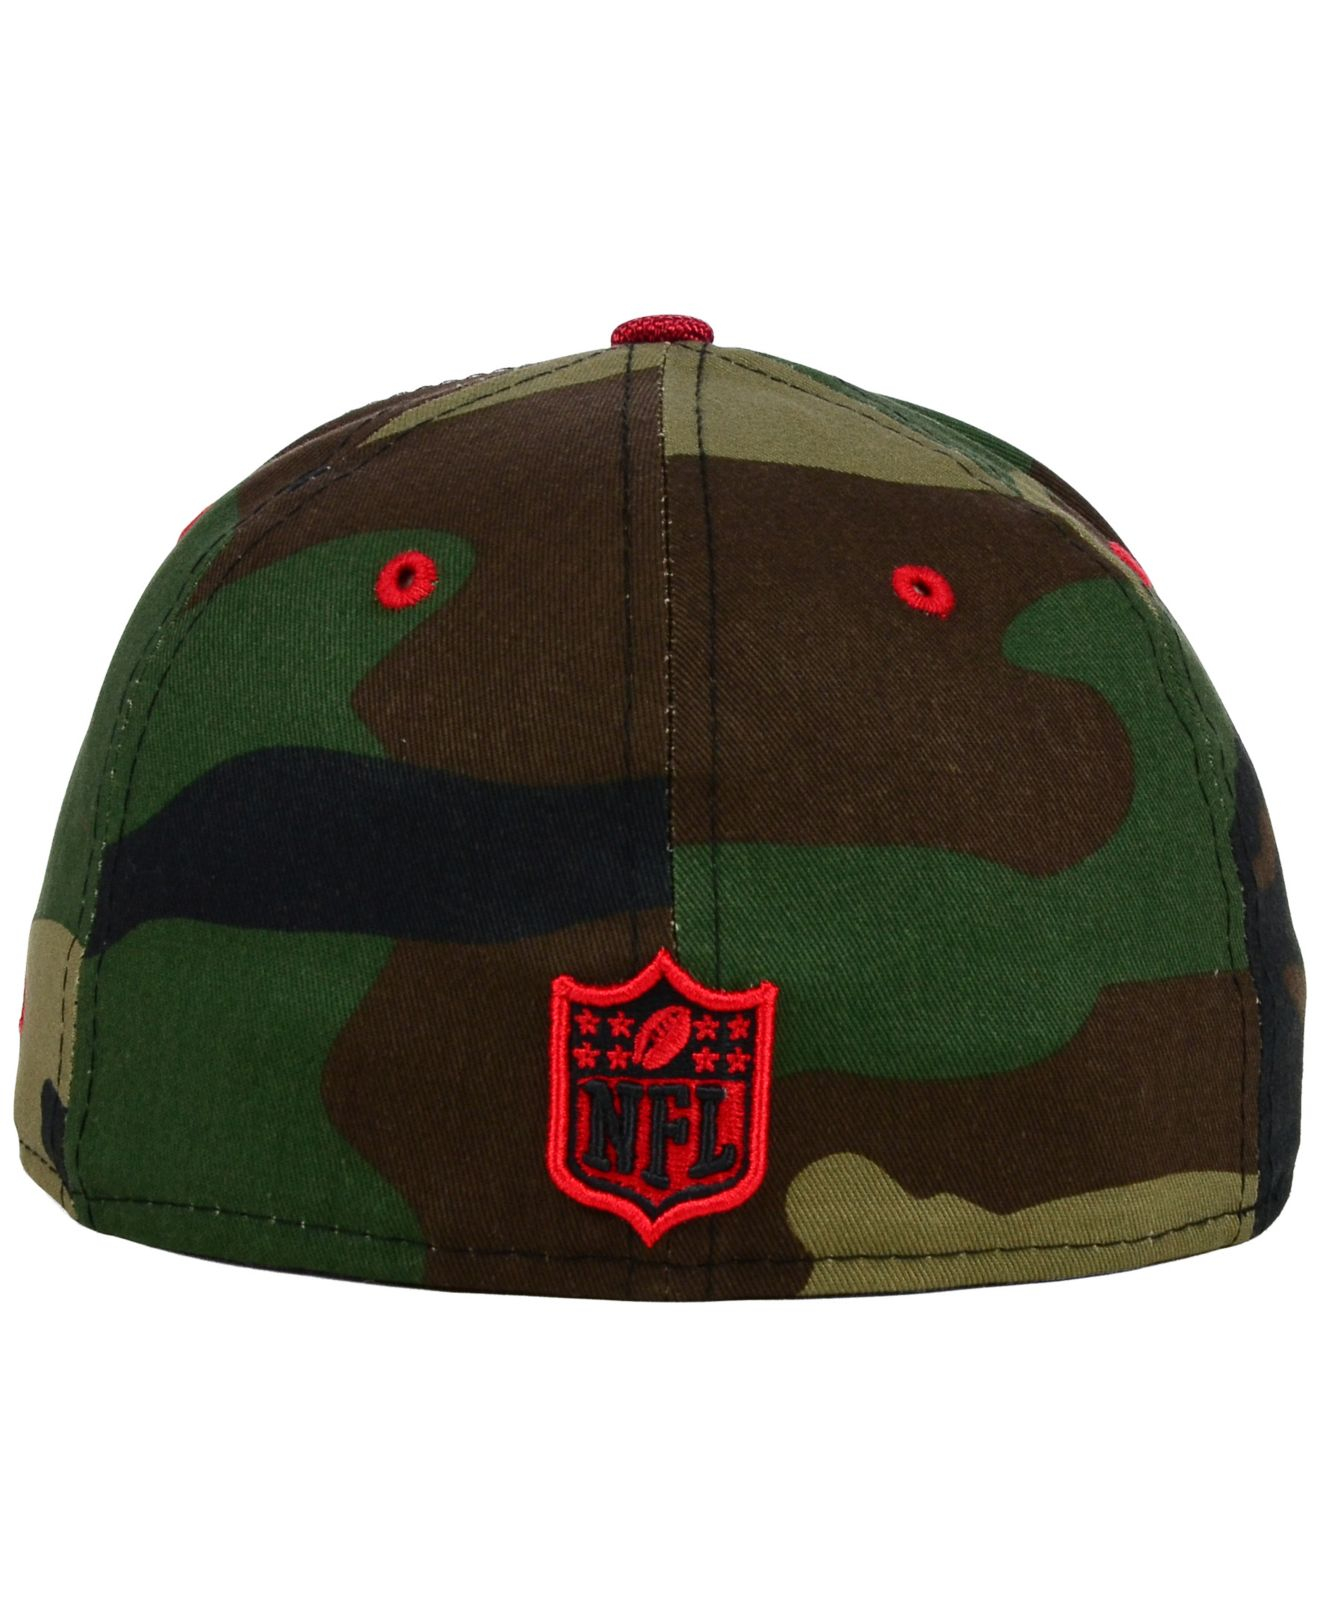 finest selection 47bab 1eb39 ... closeout lyst ktz tampa bay buccaneers balisticamo 59fifty cap in green  for men 4a7b7 1af2f